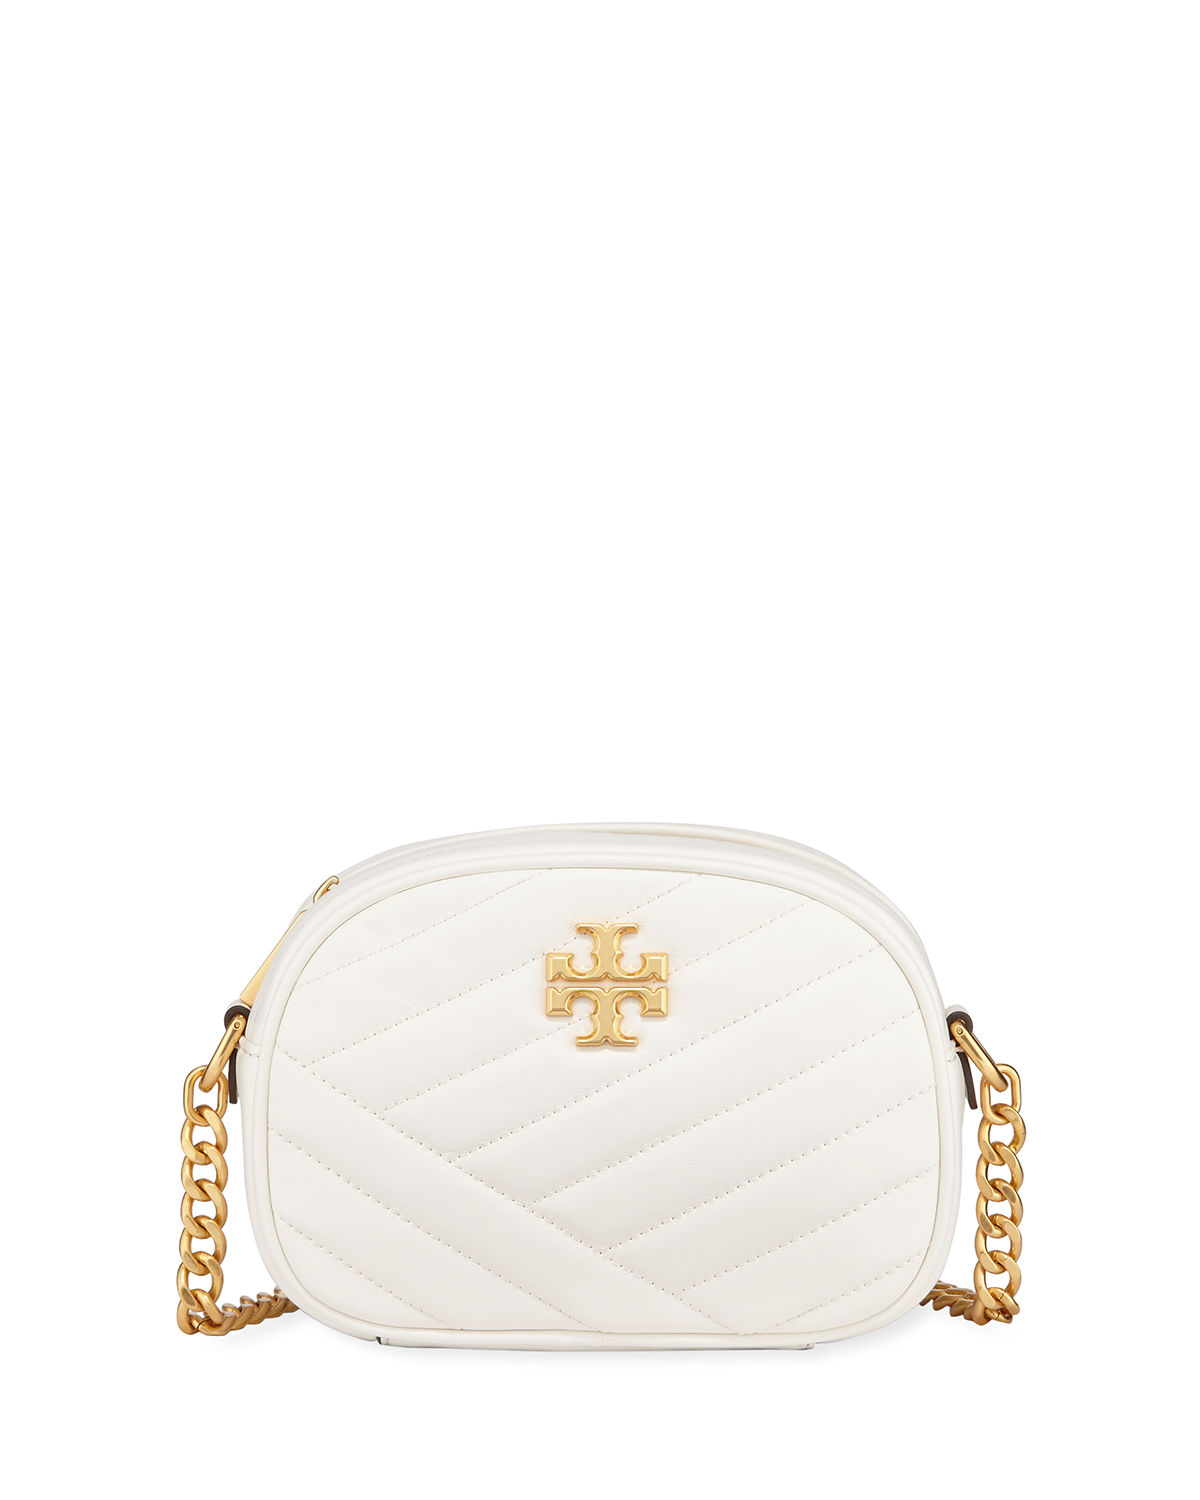 08e9033728b Tory Burch Kira Quilted Leather Xs Crossbody Bag In Ivory